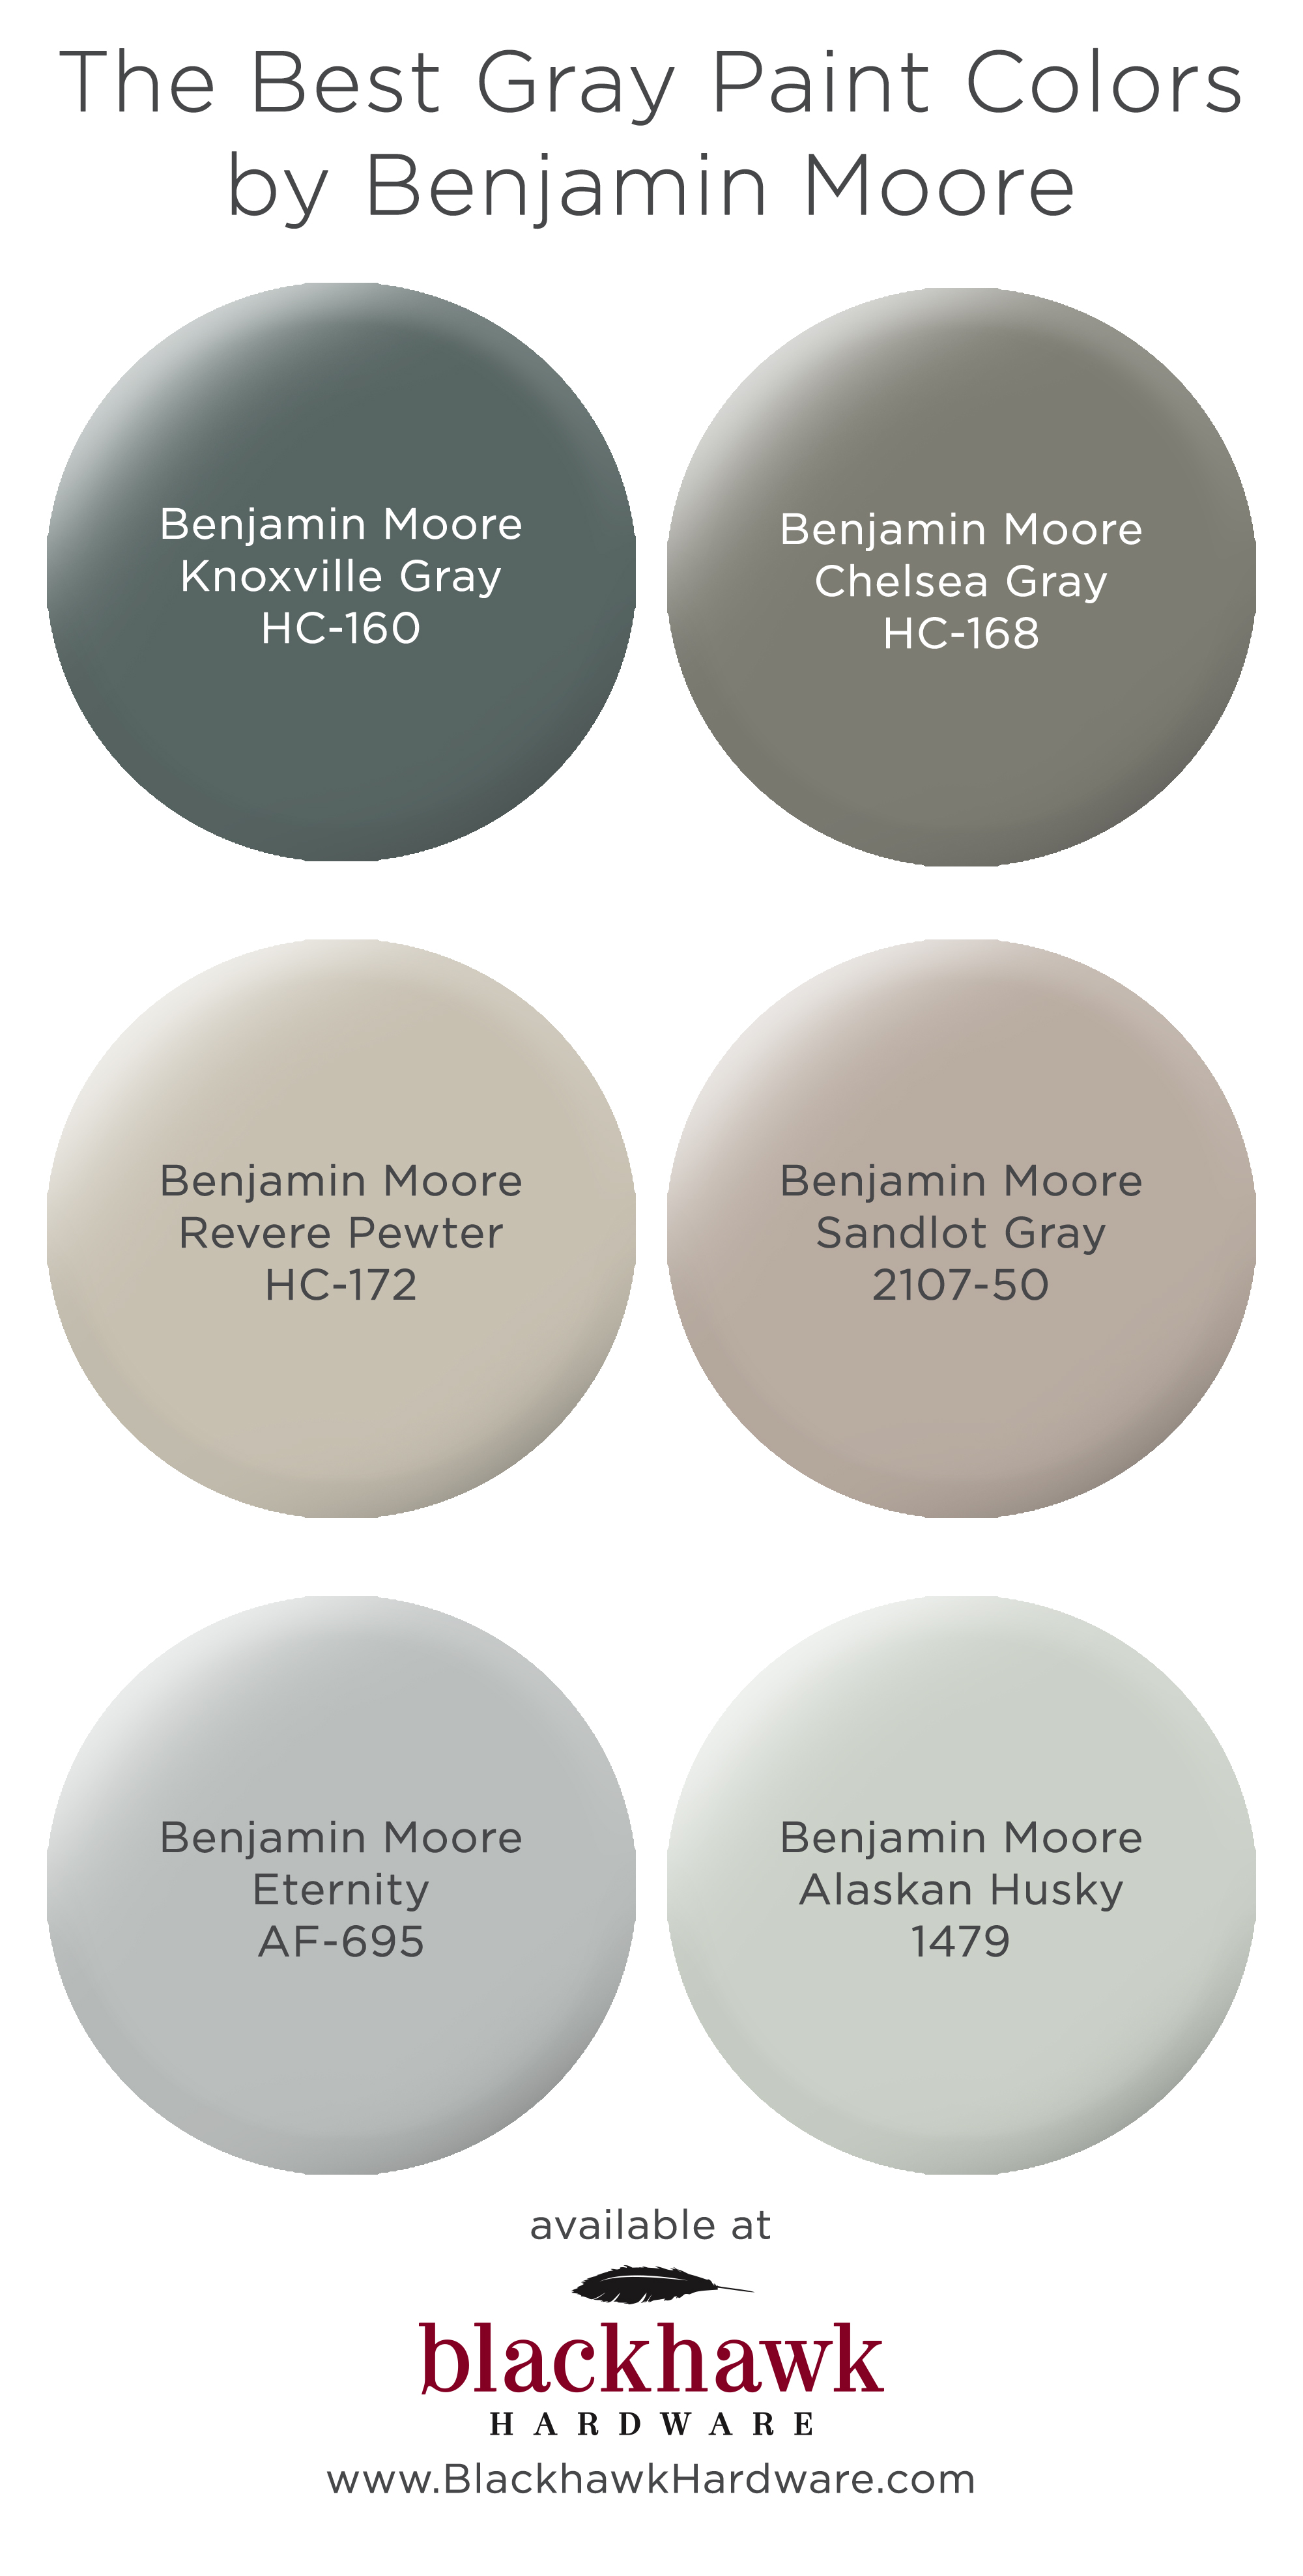 Colors That Complement Gray Walls The Best Gray Paint Shades By Benjamin Moore Blackhawk